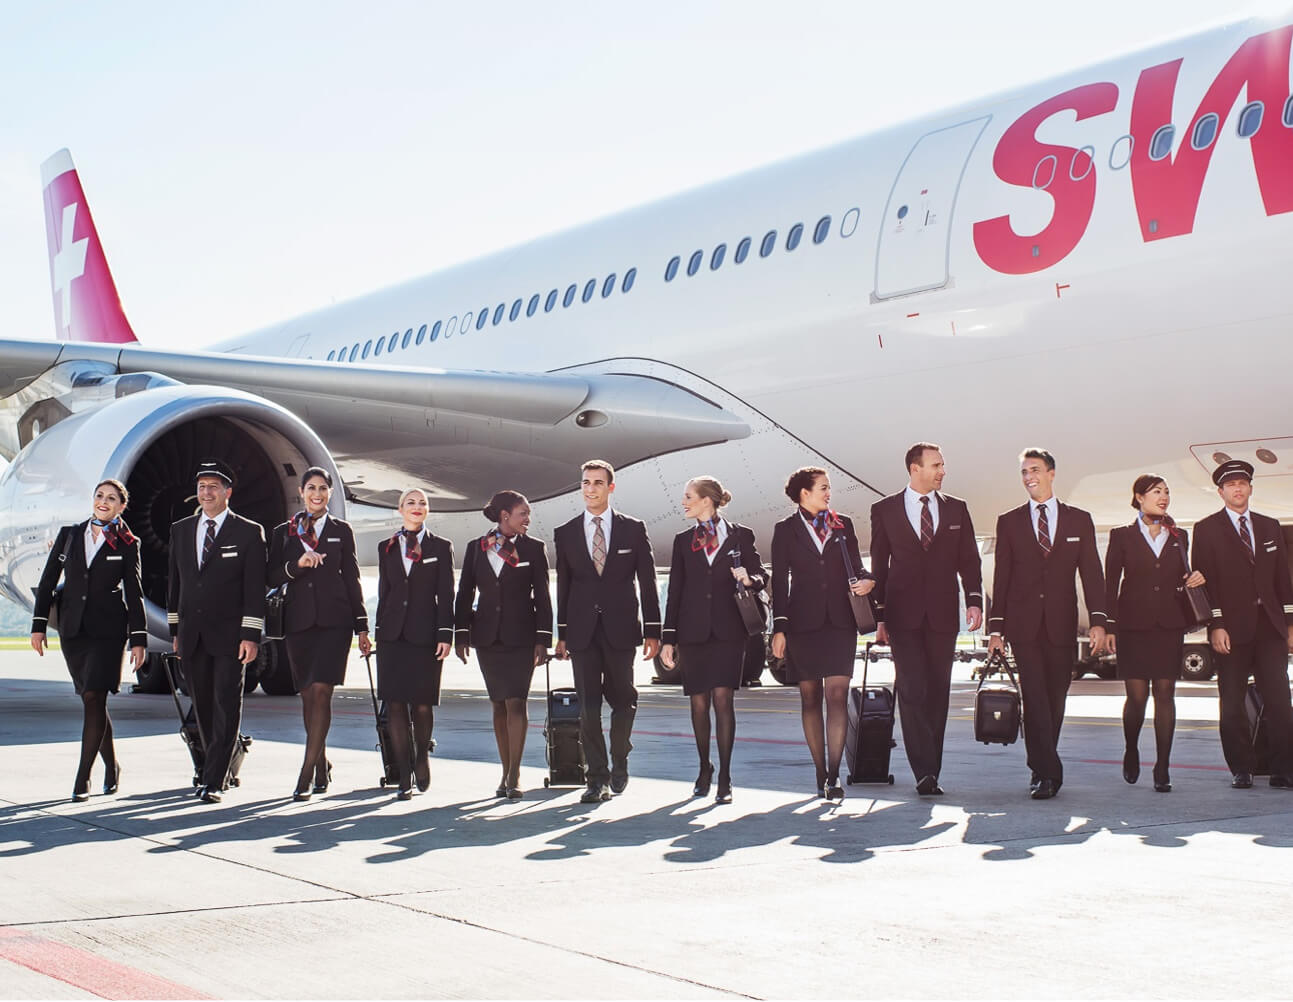 Swiss Airlines - finding sustainable purpose